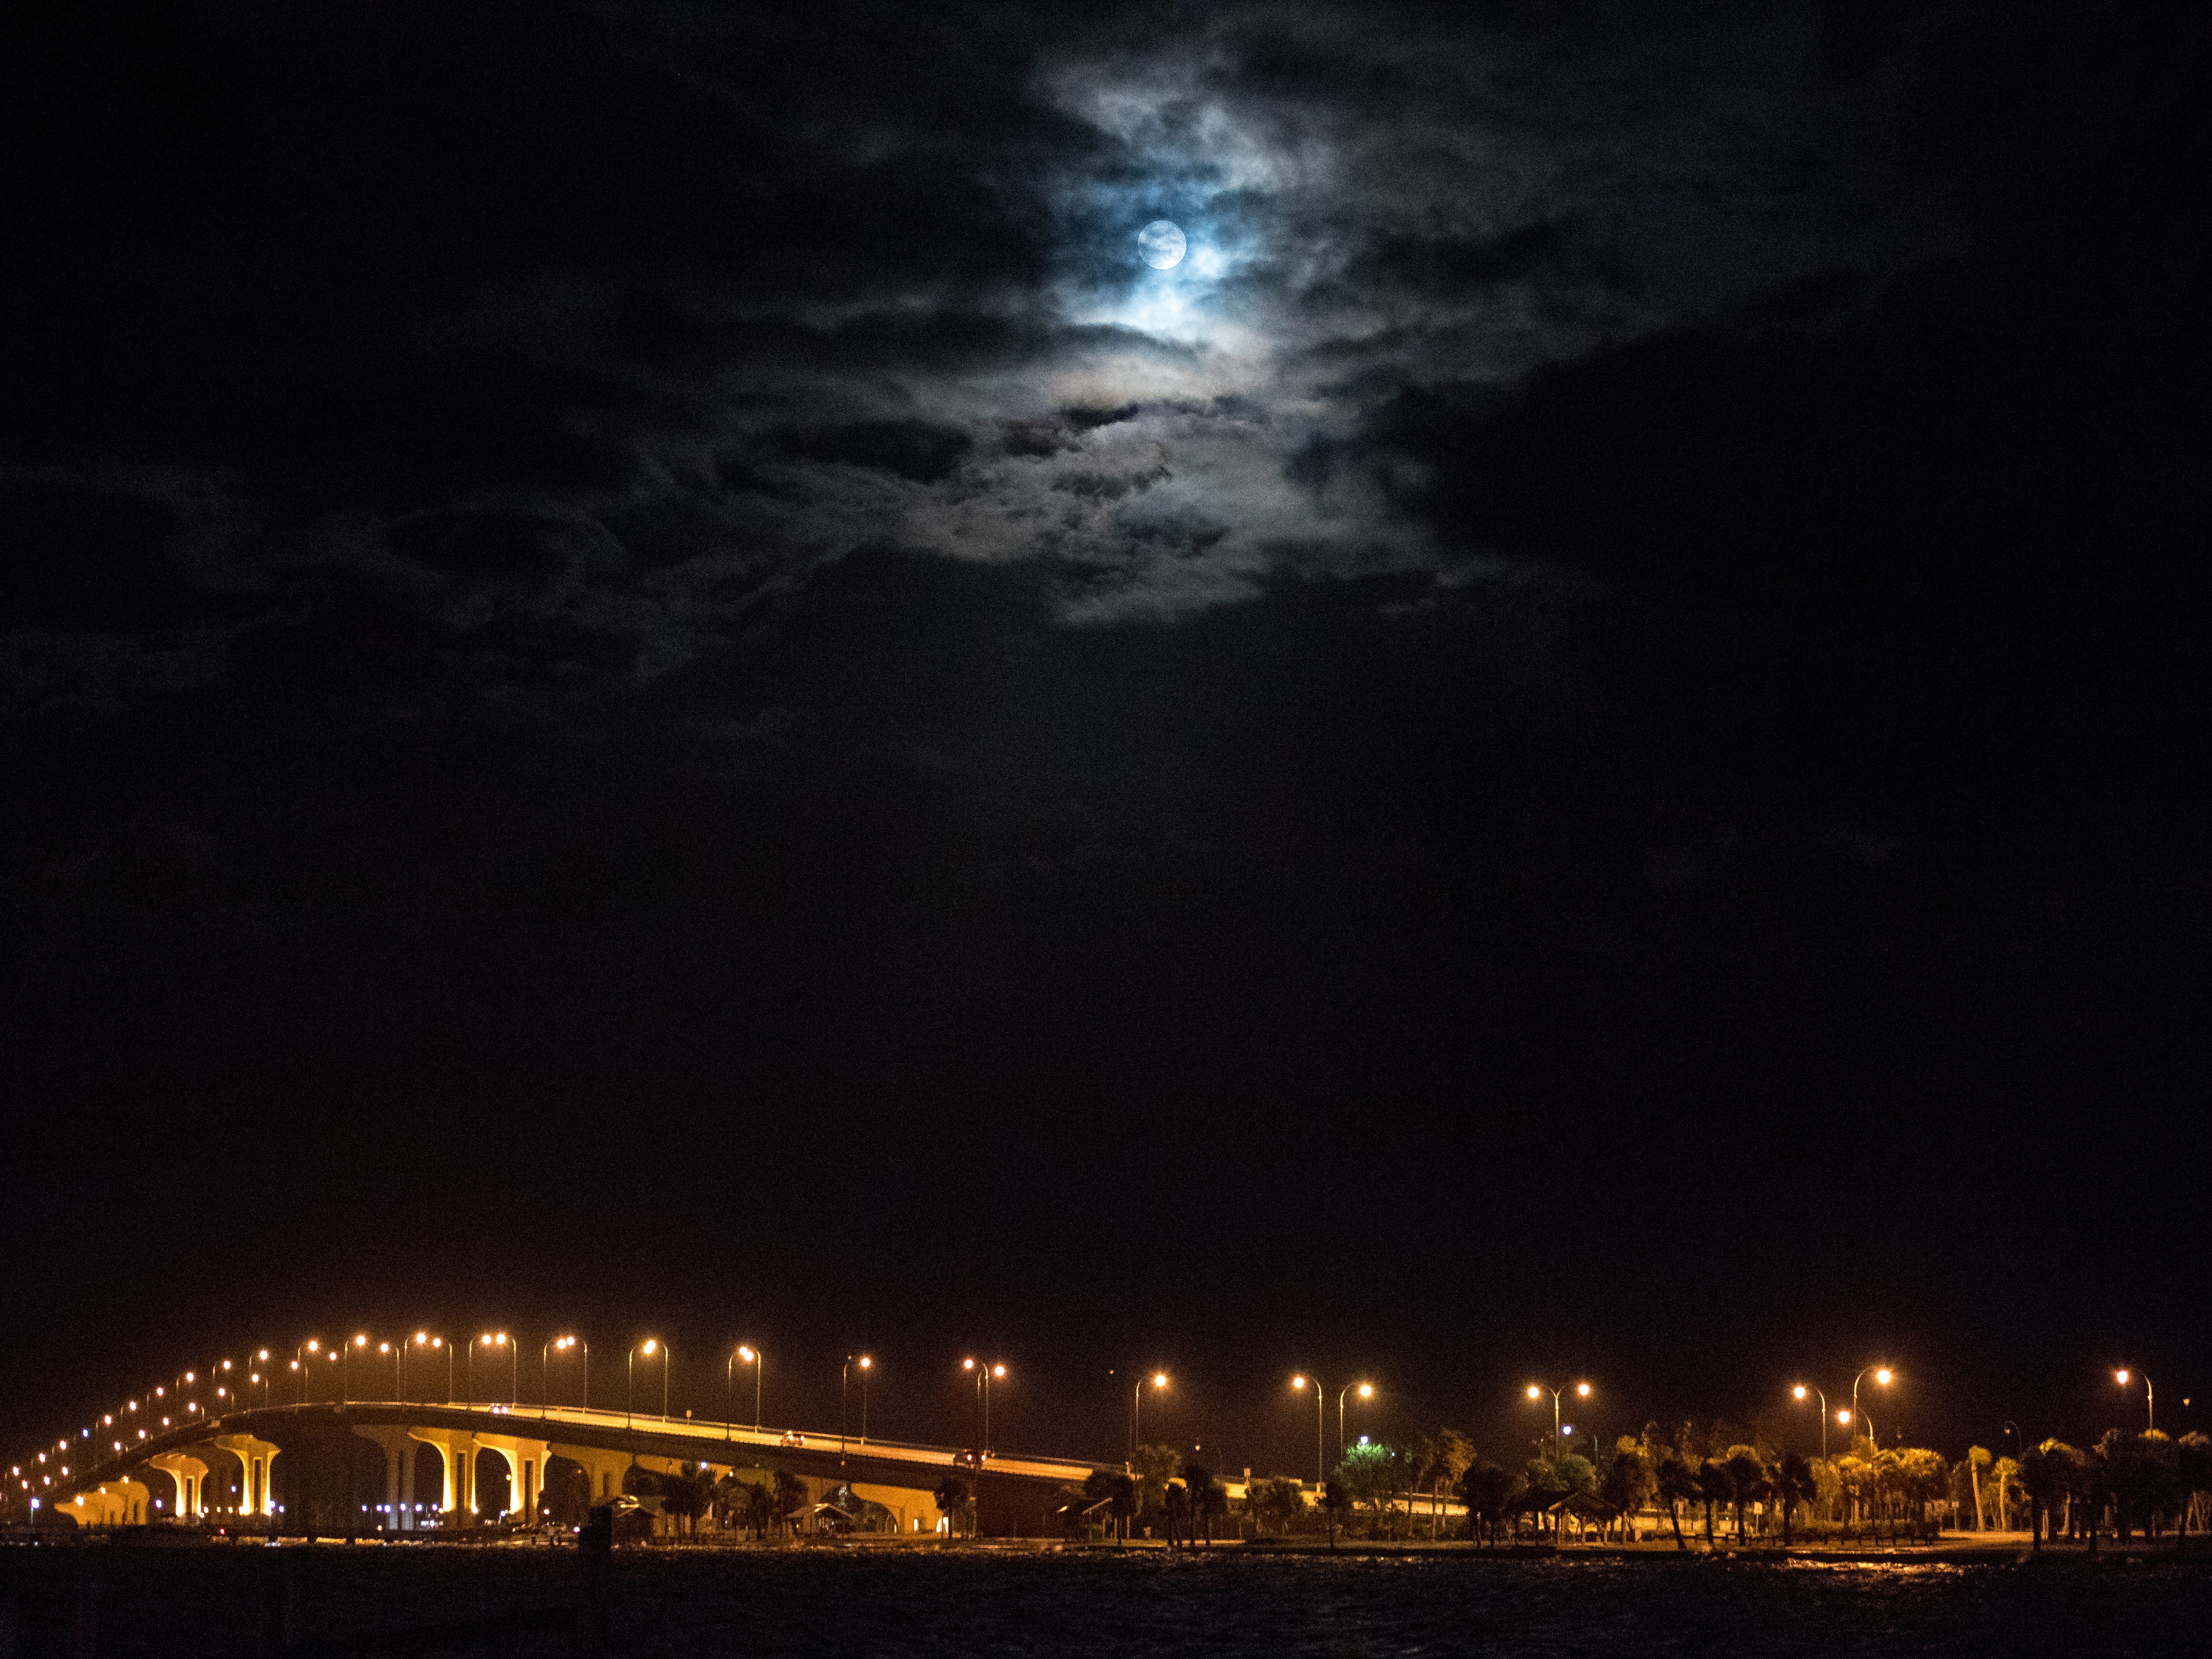 """The last supermoon of 2019, the """"super worm equinox moon,"""" hovers over the Jensen Beach Causeway on the vernal equinox Wednesday, March 20, 2019, as seen from Jensen Beach. The next supermoon will not occur until March 2020."""